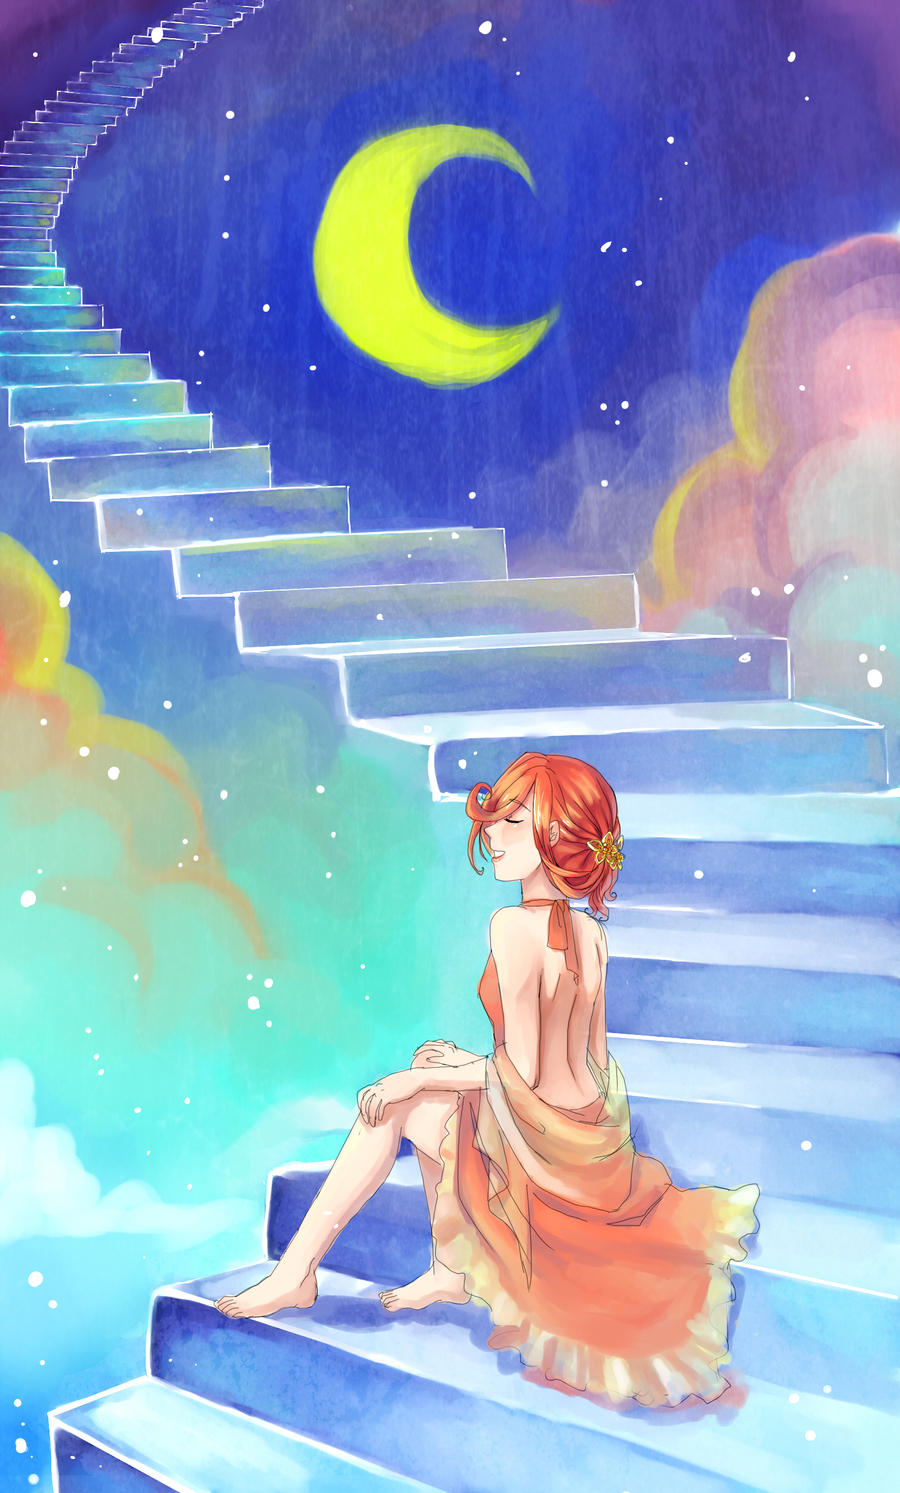 Stairs by Aedjy